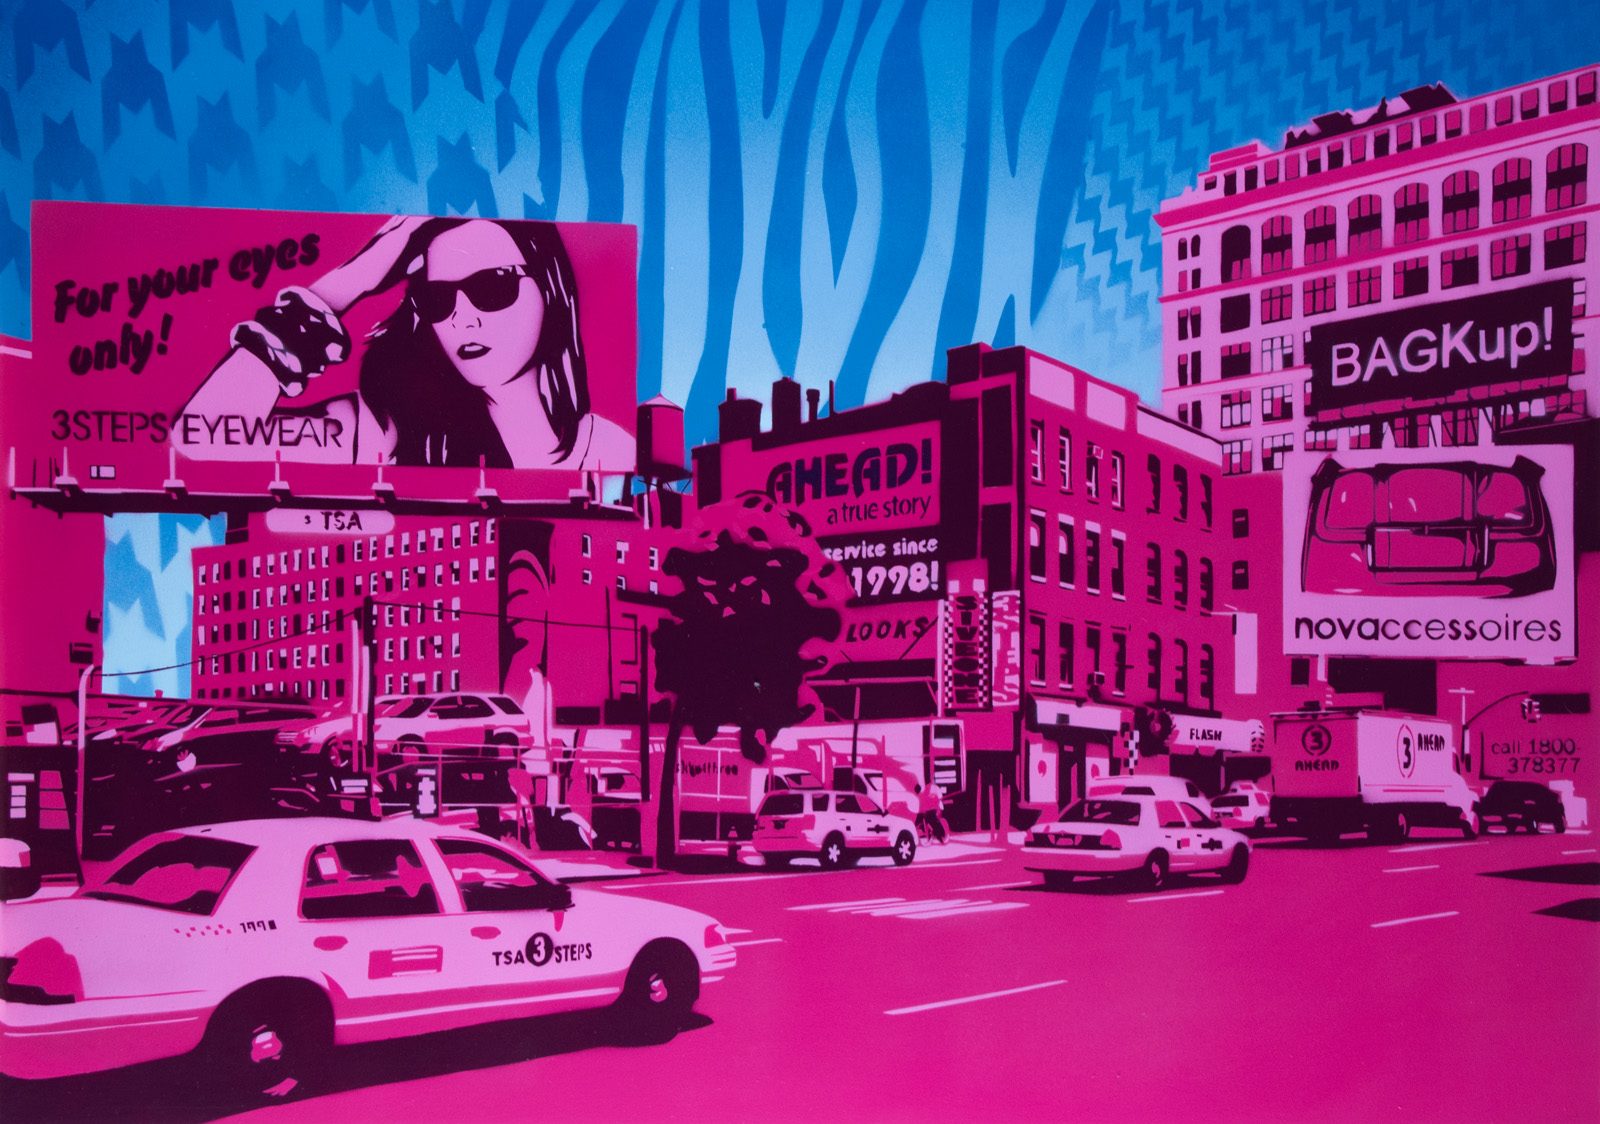 3Steps |  Ahead studio show | Street ads pink blue | 70x100